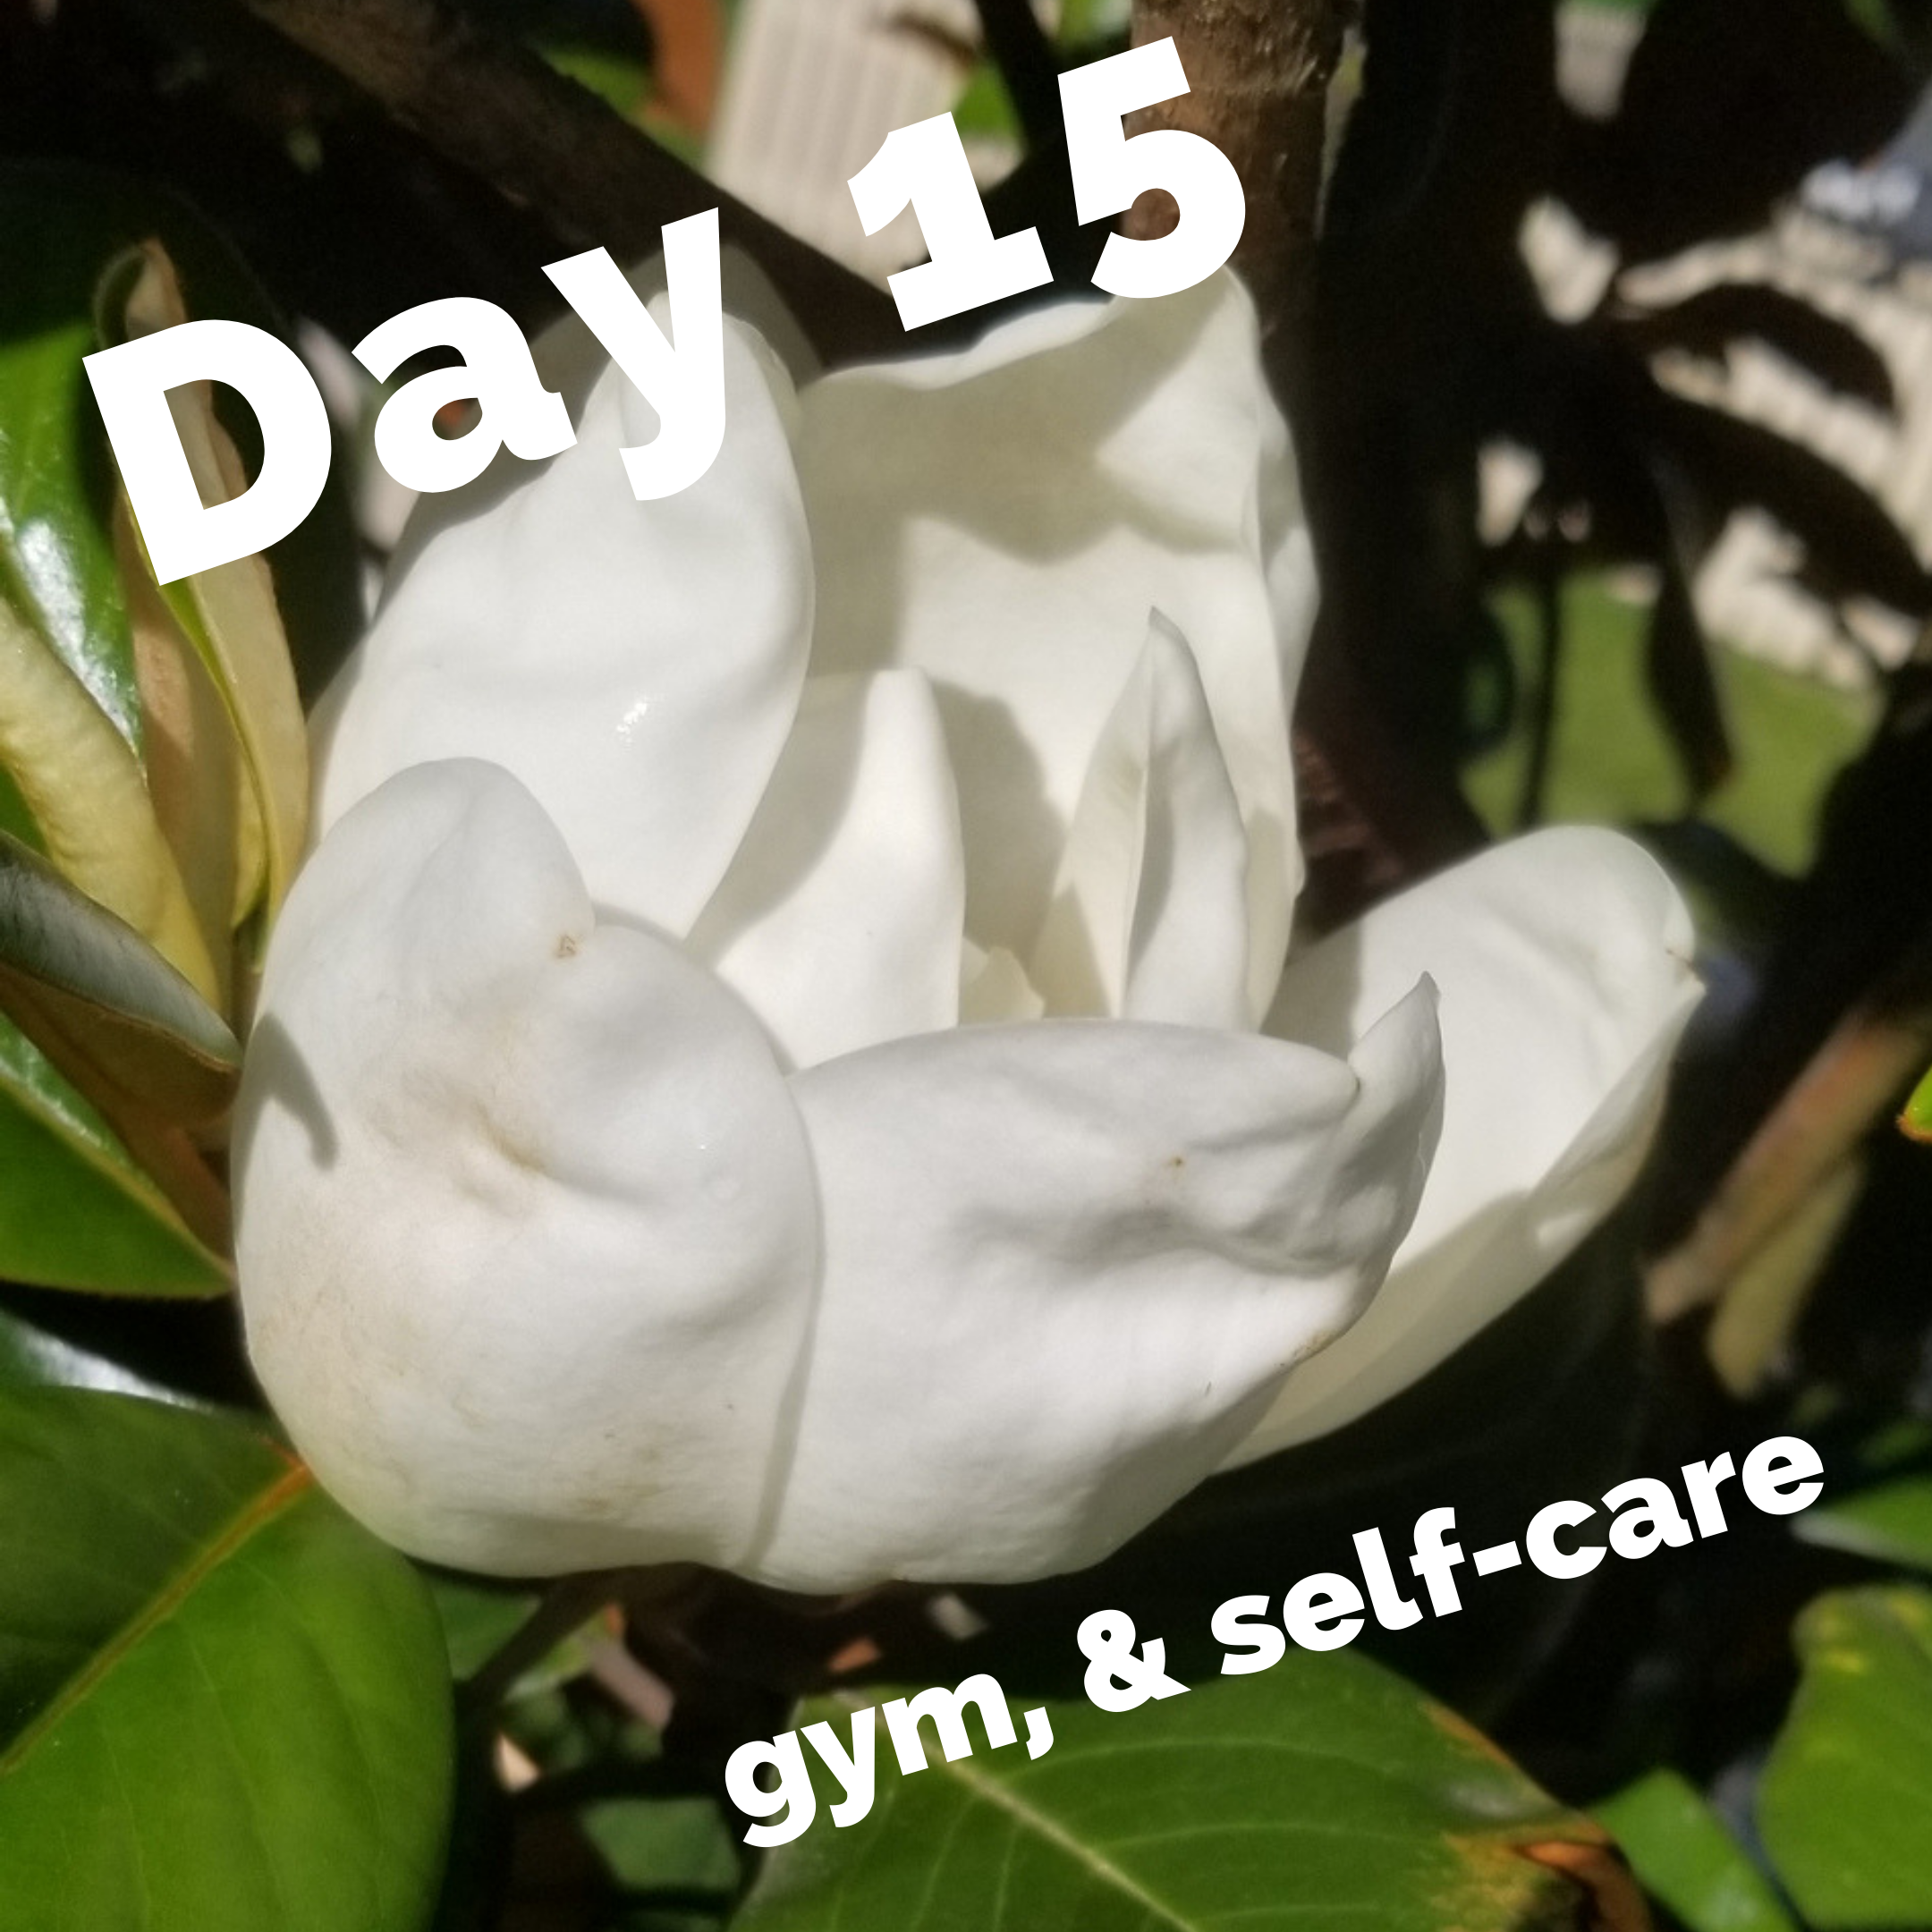 Day 15 – Exercise challenge: gym & self care